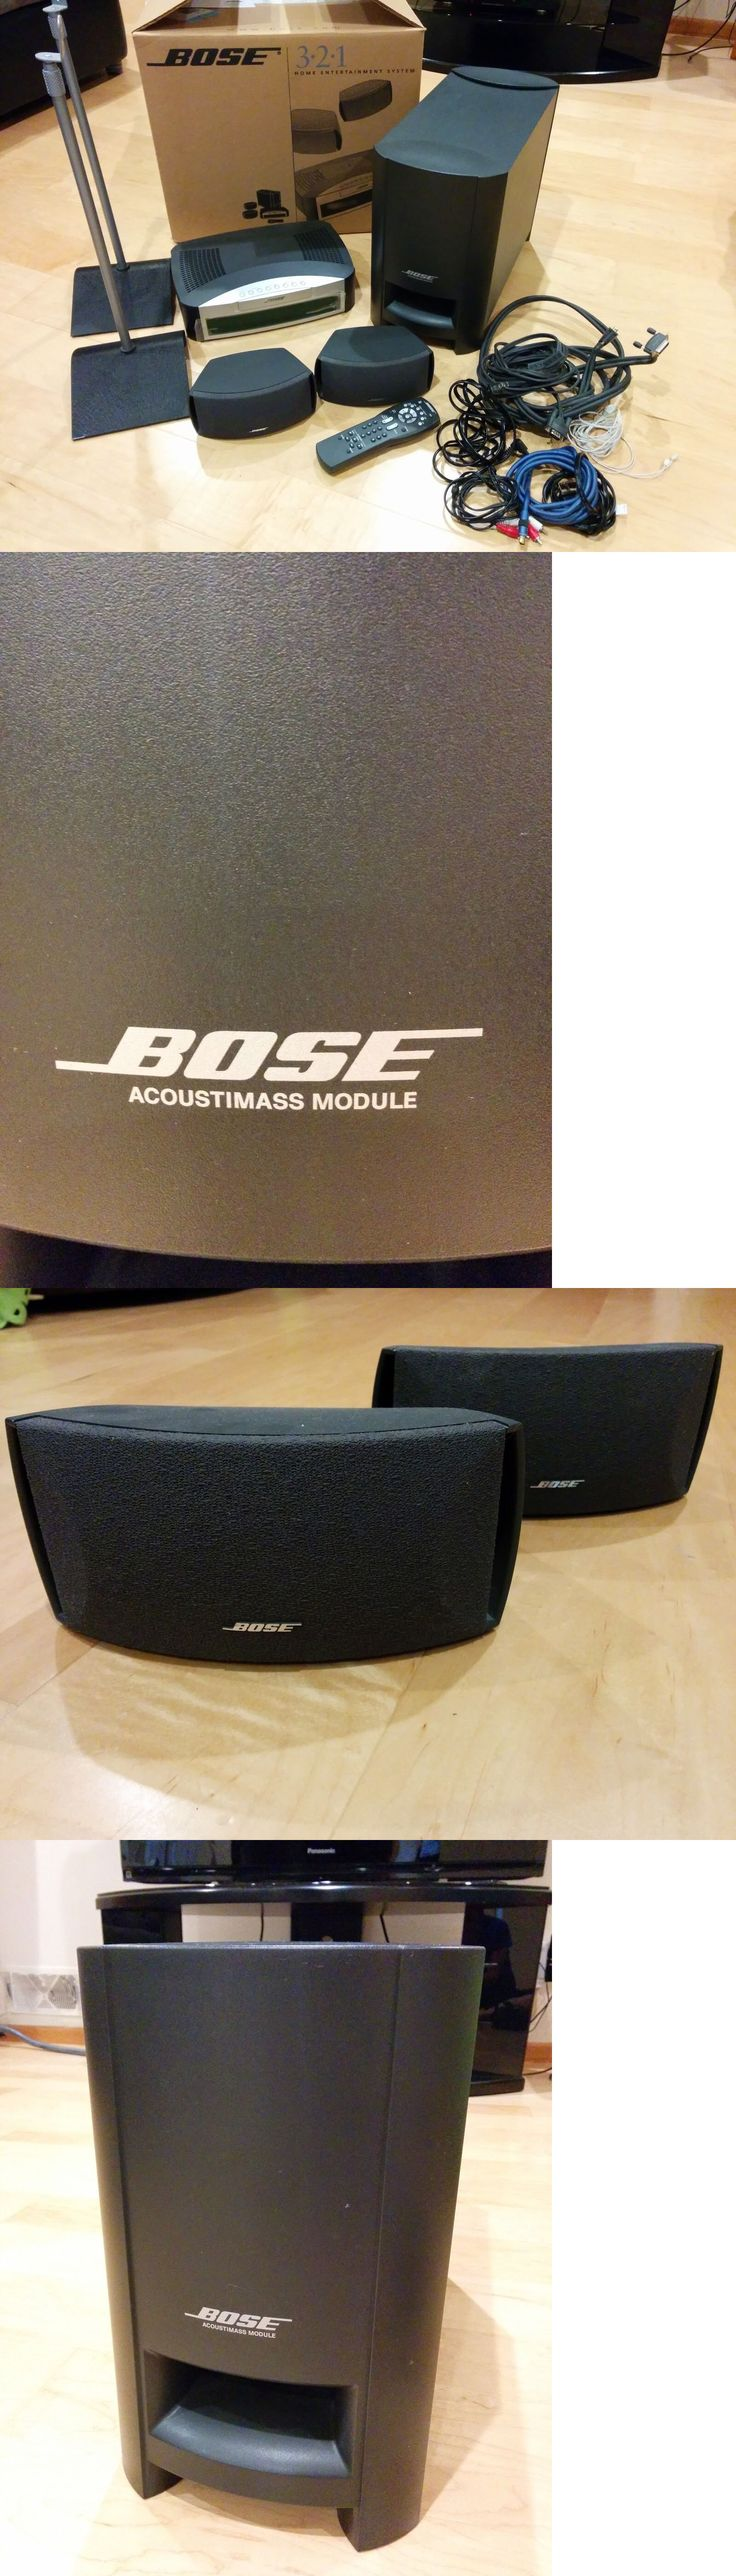 Bose soundtouch 130 home theater system black 738484 1100 b amp h - Home Theater Systems Bose 3 2 1 Series Dvd Home Entertainment System